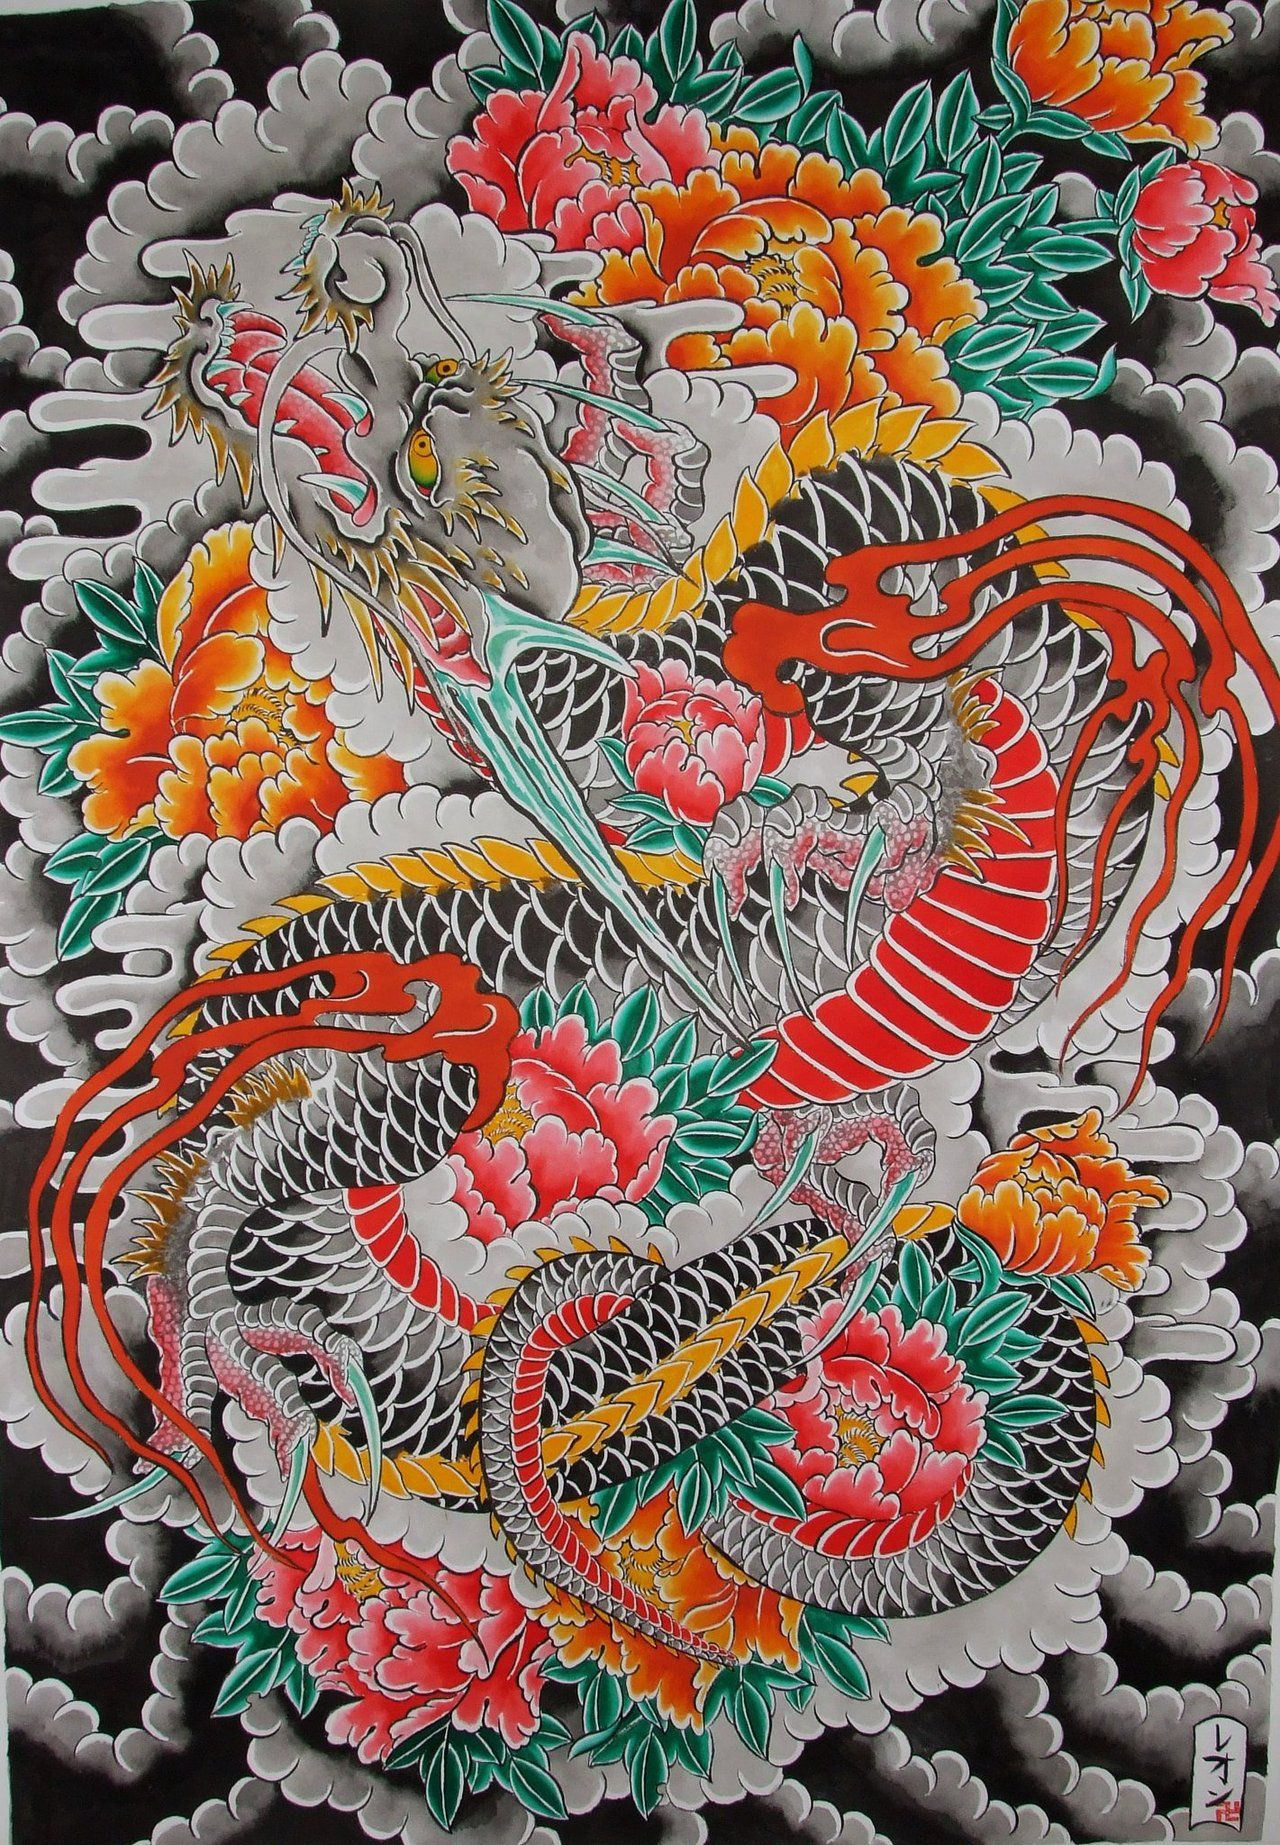 Japanese dragon kf2o1 500 721 tribal dragons for Japanese dragon painting